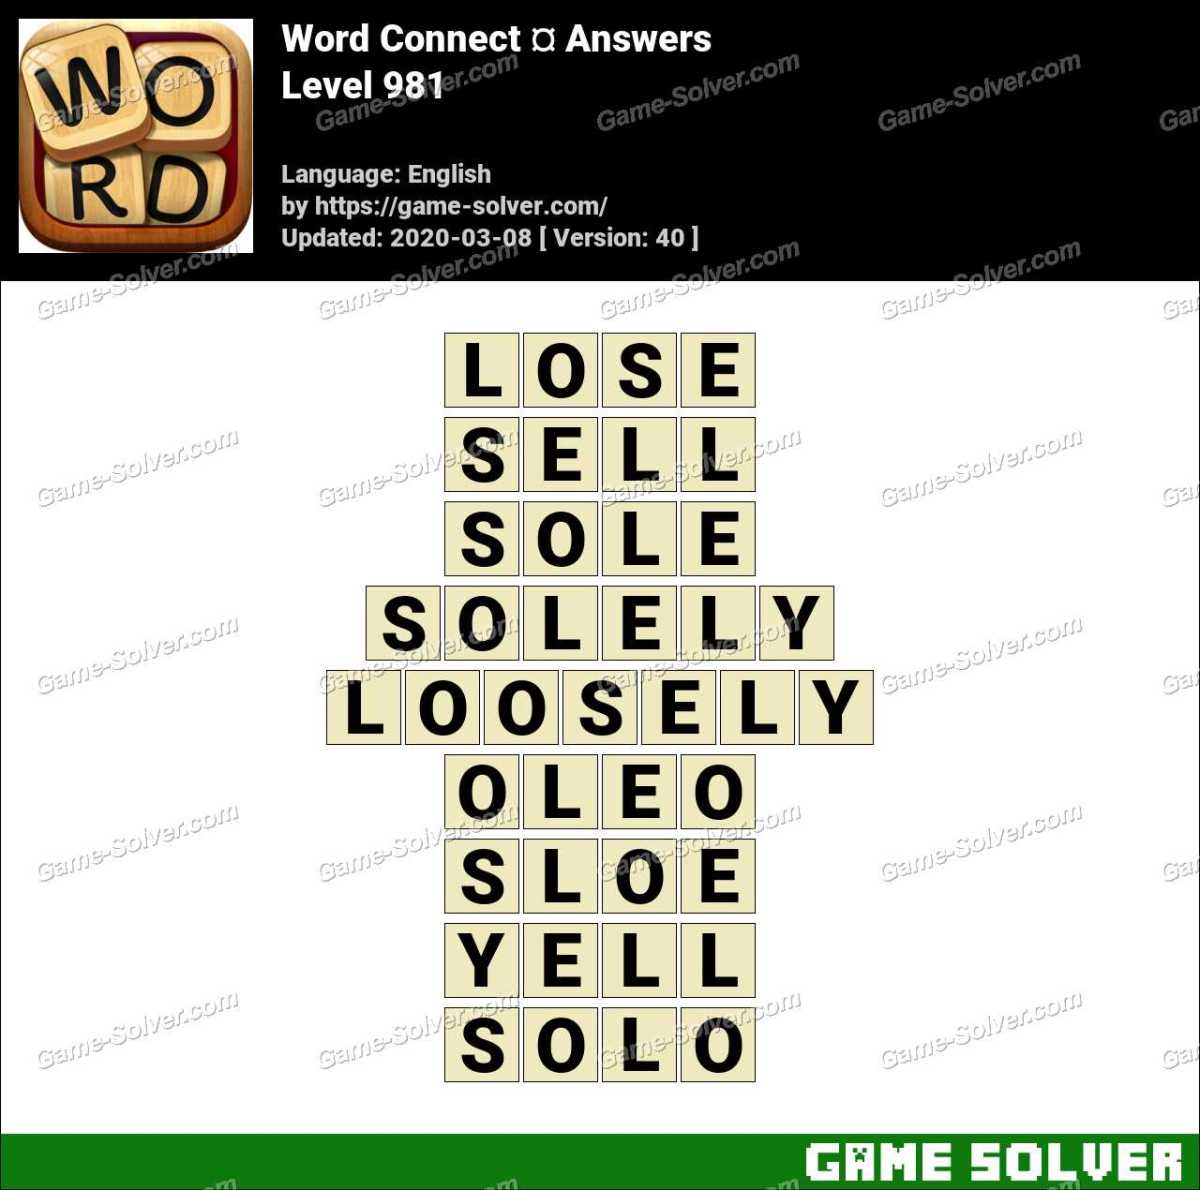 Word Connect Level 981 Answers